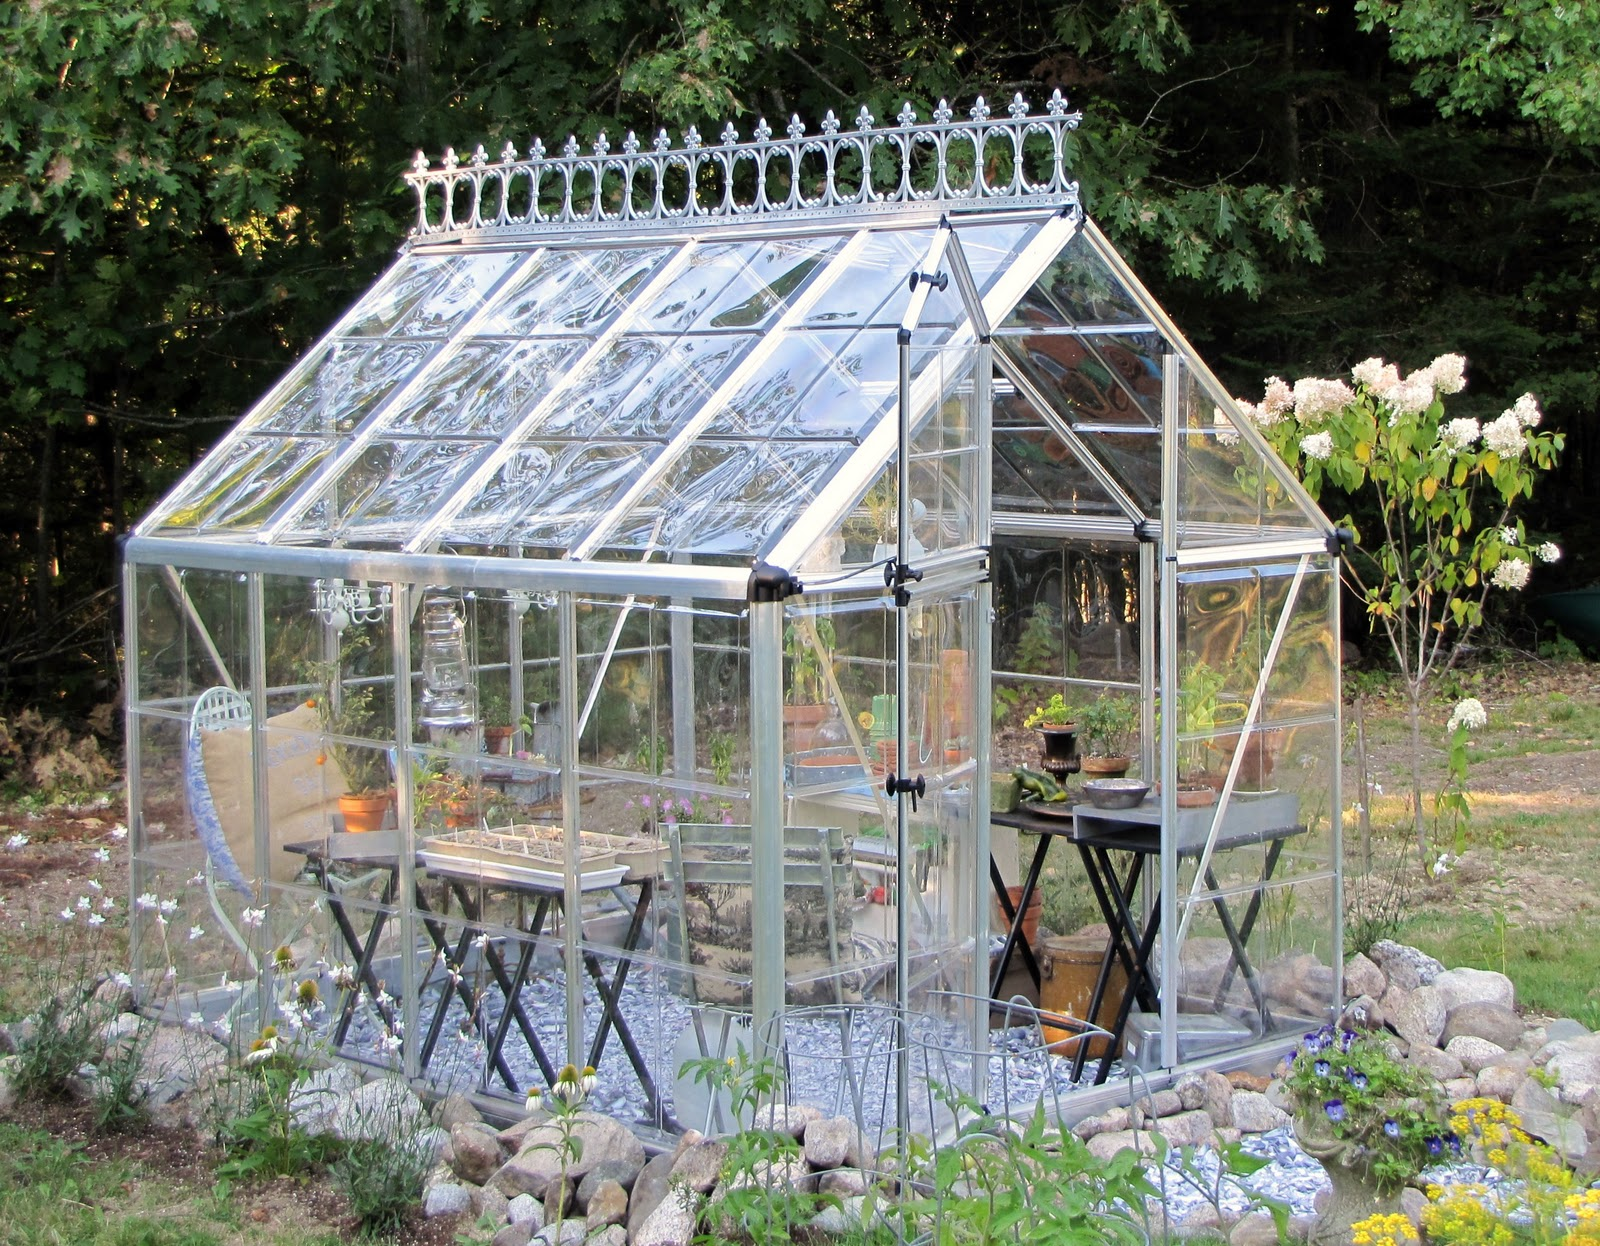 Amazing Fearless Nesting Adding Romantic Touches To My Tiny Greenhouse Largest Home Design Picture Inspirations Pitcheantrous